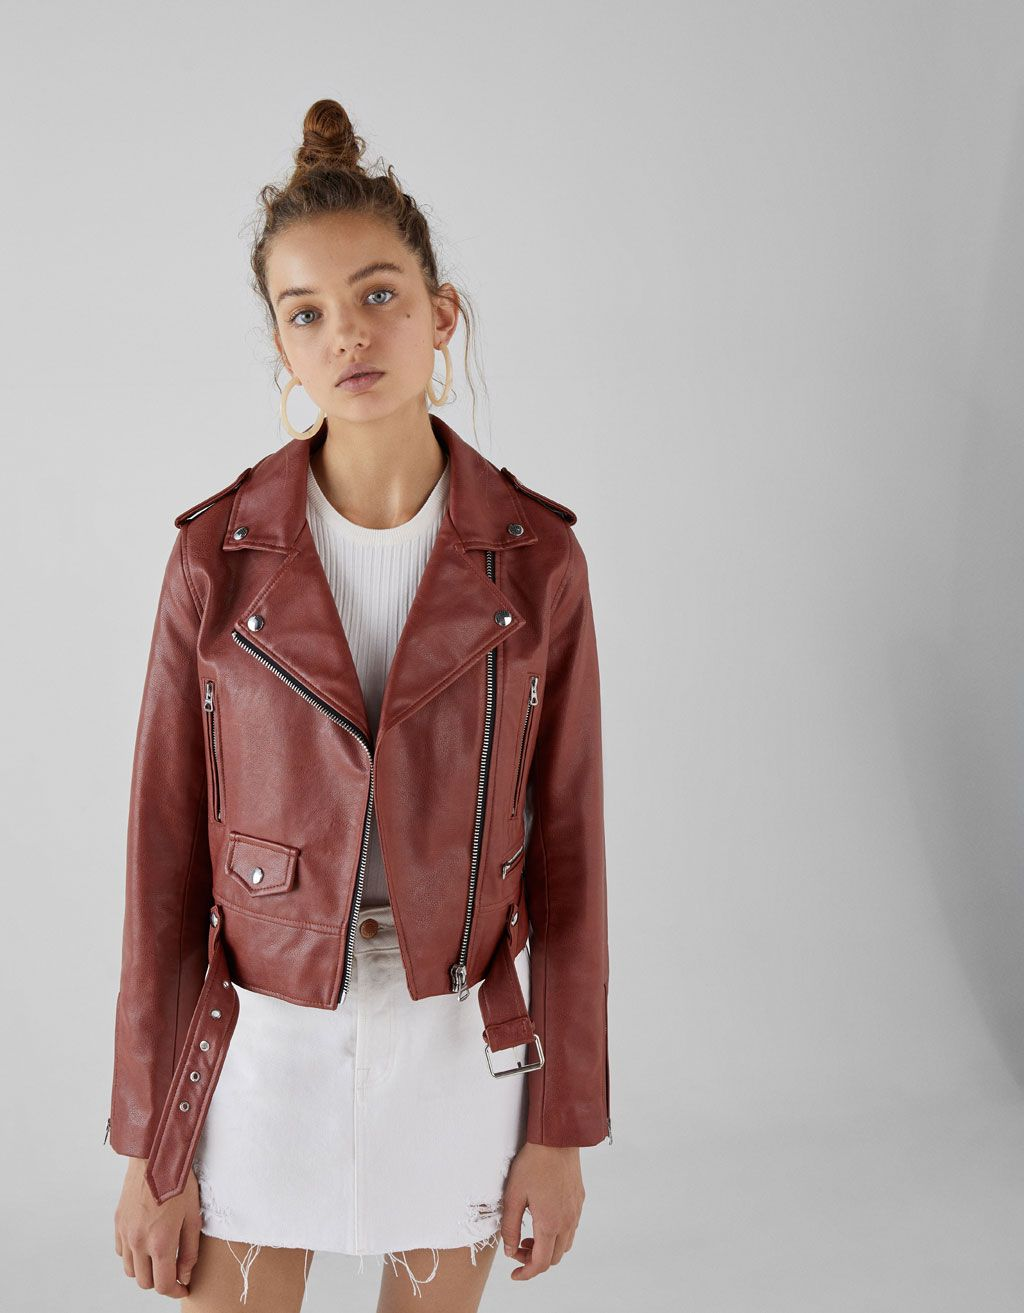 Faux leather biker jacket (With images) Leather jacket